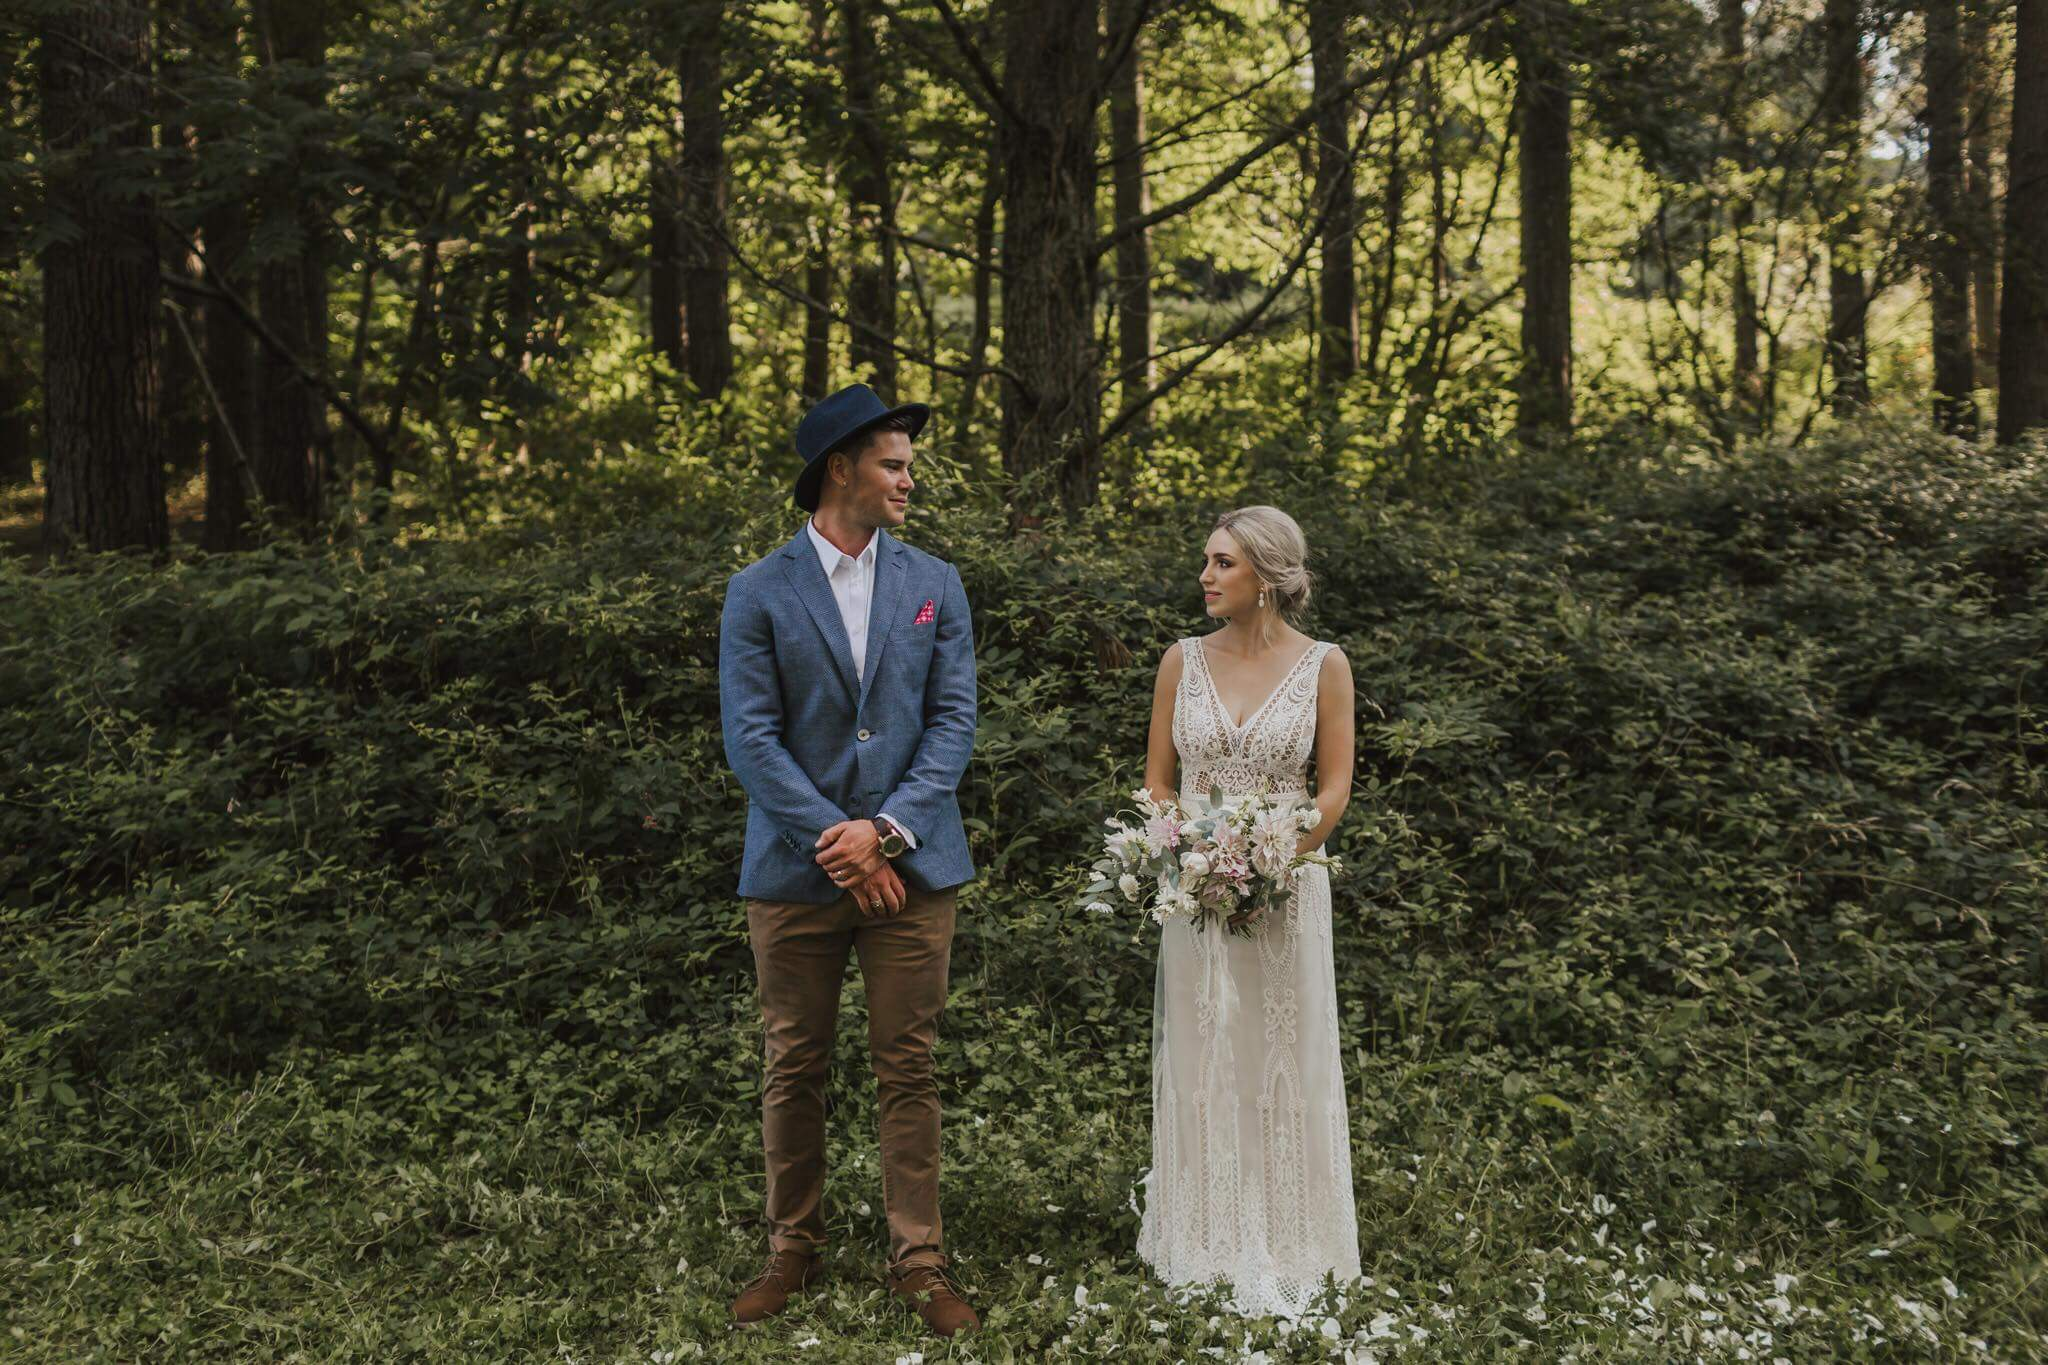 Real Weddings | Vinka Design | Real Brides Wearing Vinka Gowns | Briar and Corey side by side in the woods